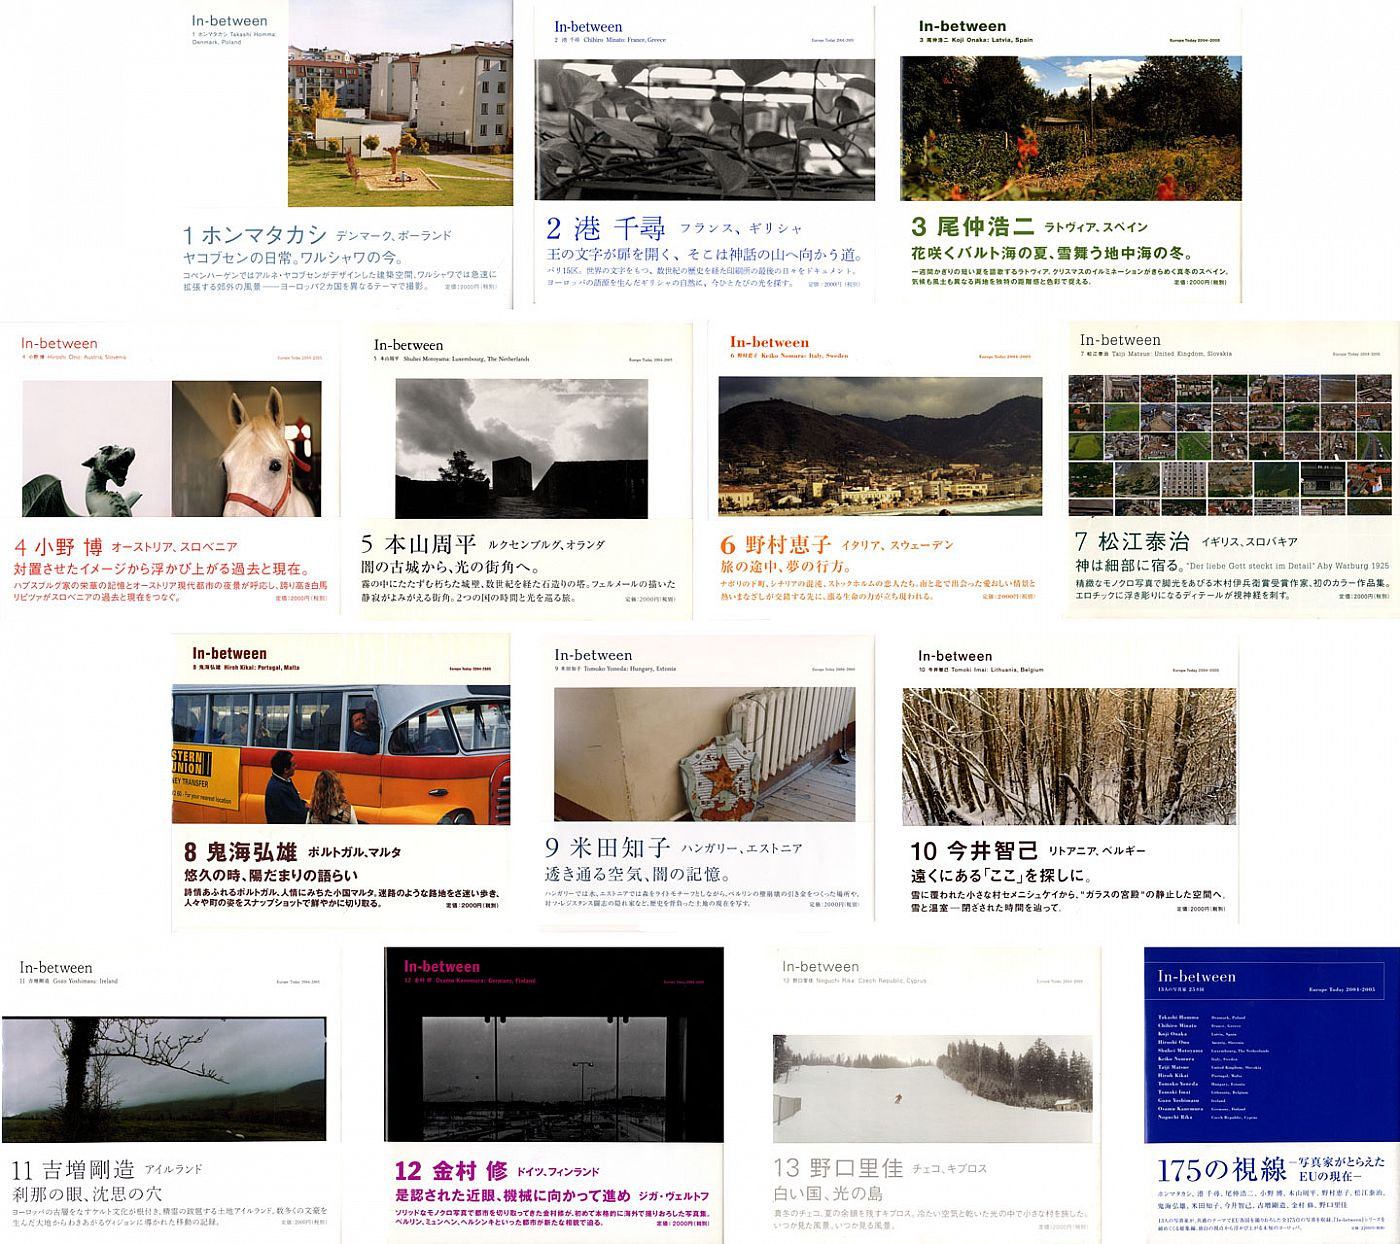 In-between: Europe Today 2004-2005. 13 Photographers, 25 Countries. (Complete Set of 14 Volumes)